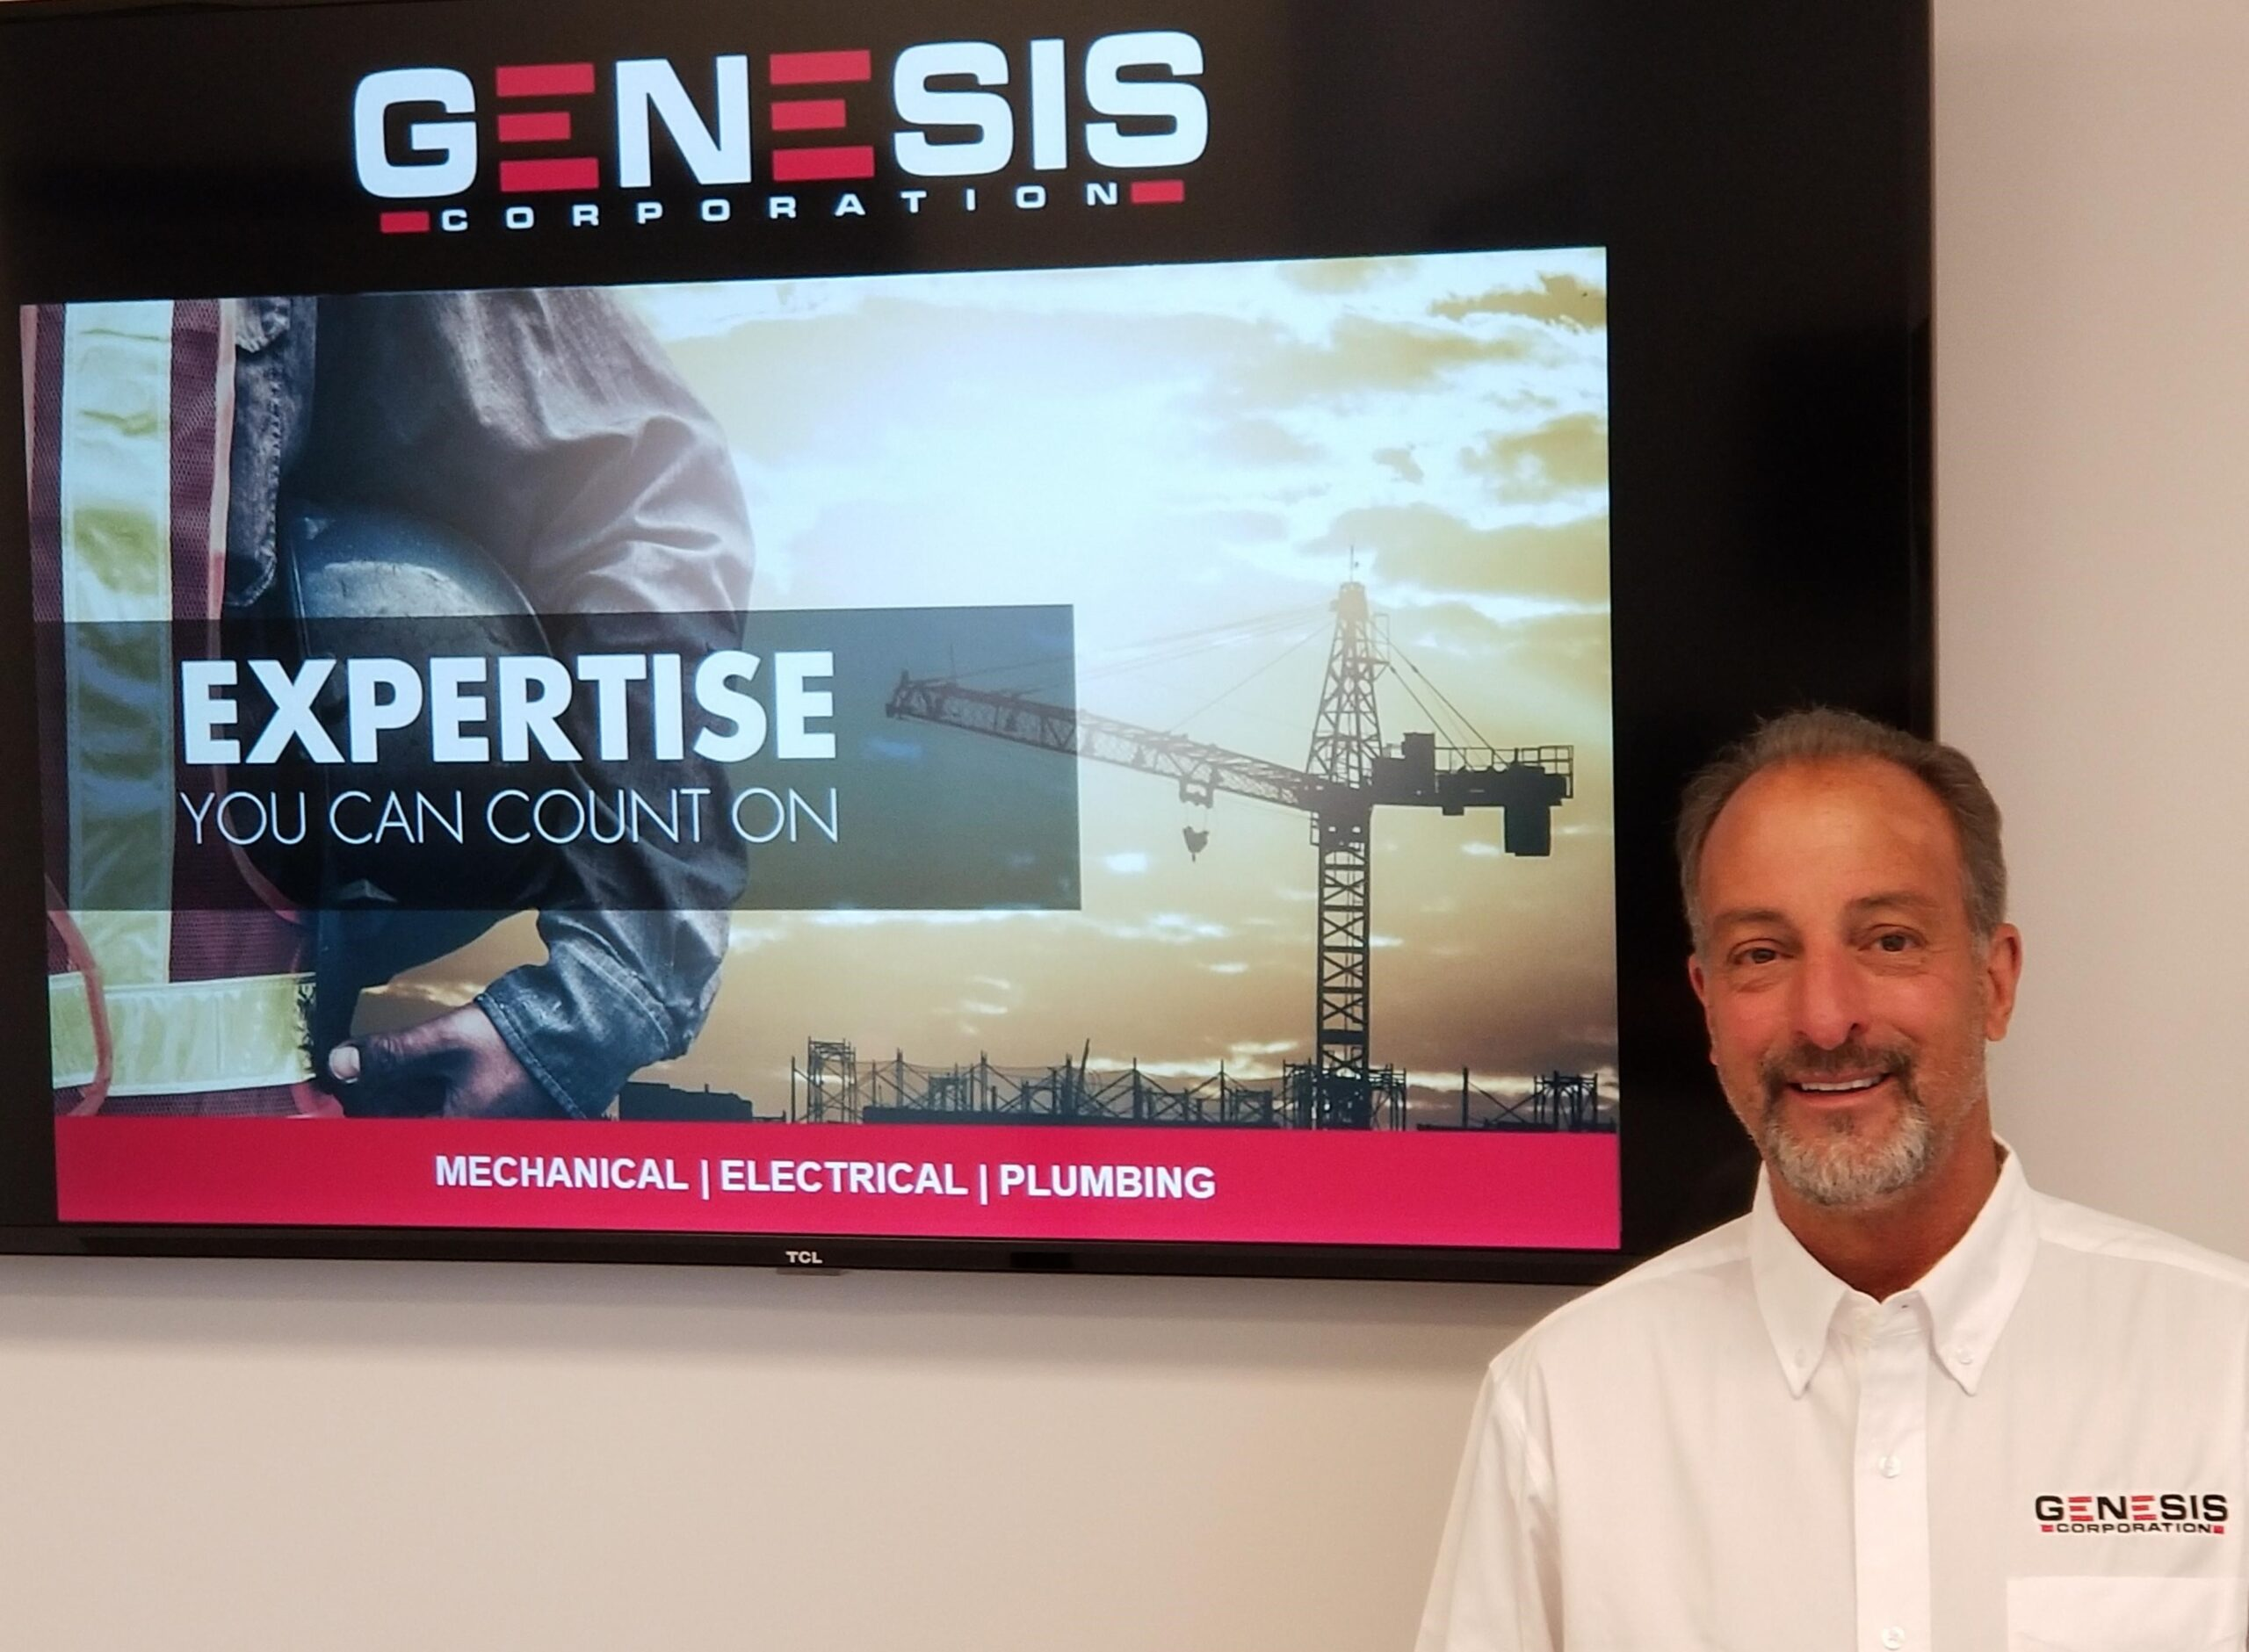 GENESIS CORPORATION WELCOMES JIM STAHL AS DIRECTOR OF CONSTRUCTION